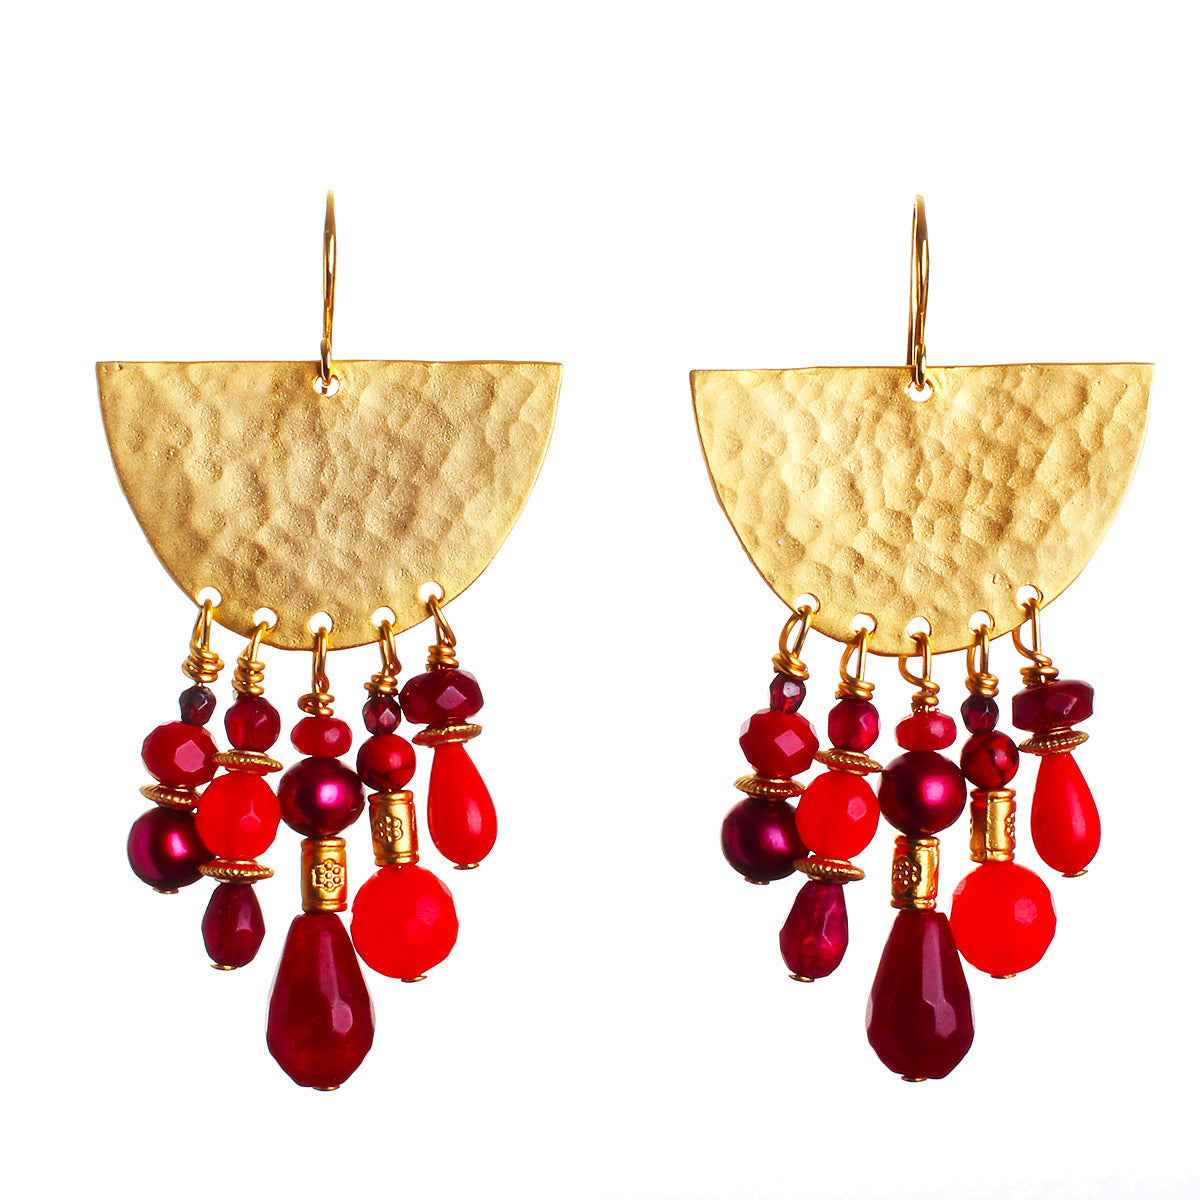 N°472 The 39 Shades of the Red Planet Statement Earrings